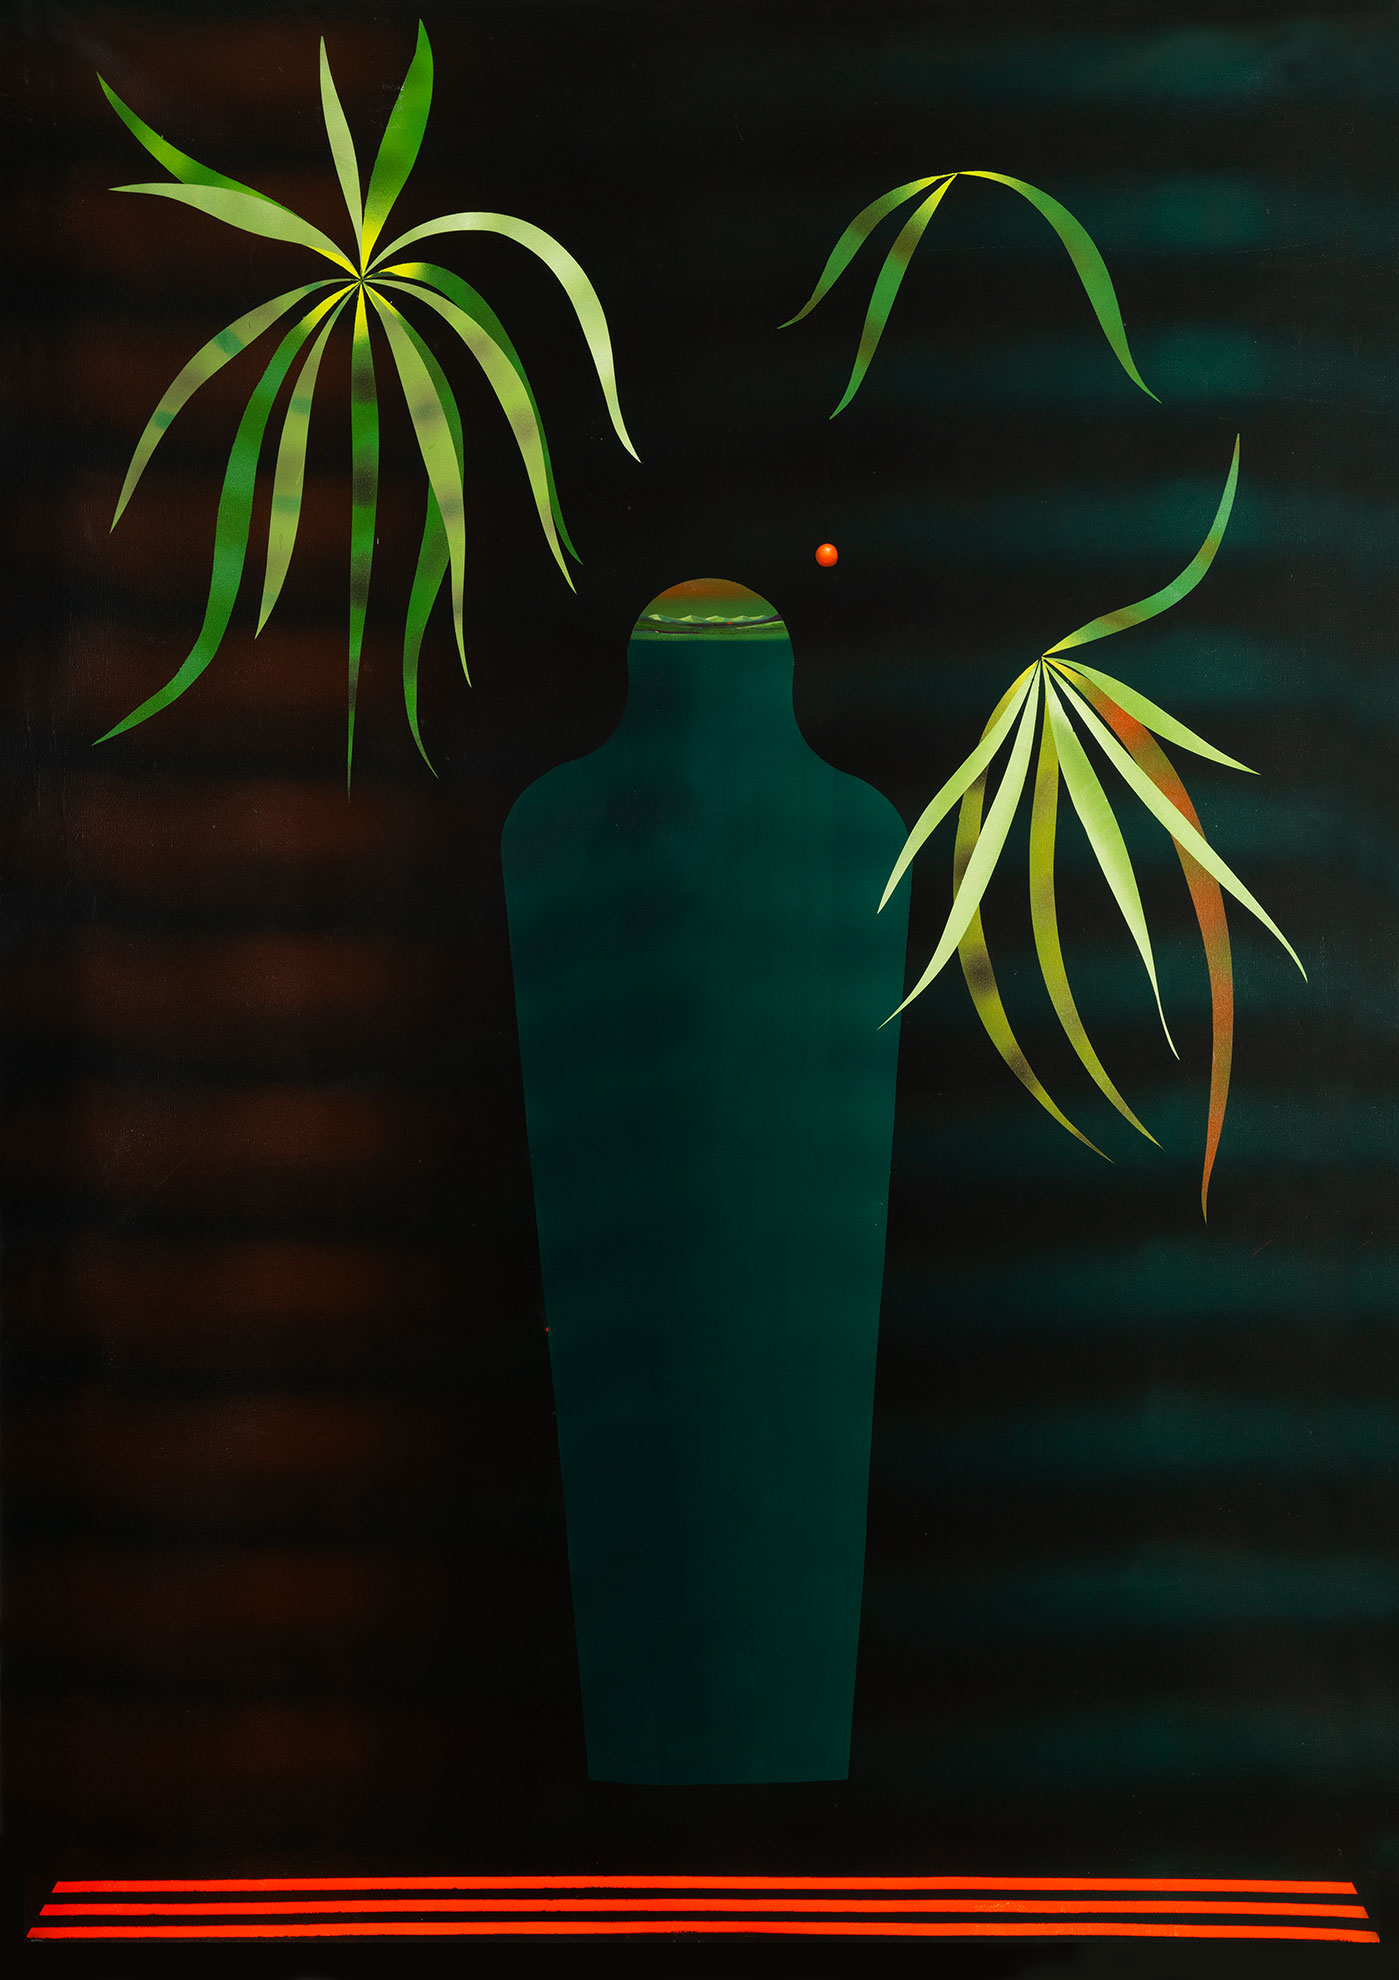 Mattia Barbieri - Adidas Tutankhamon, 2019, oil on canvas, 170 x 210 cm